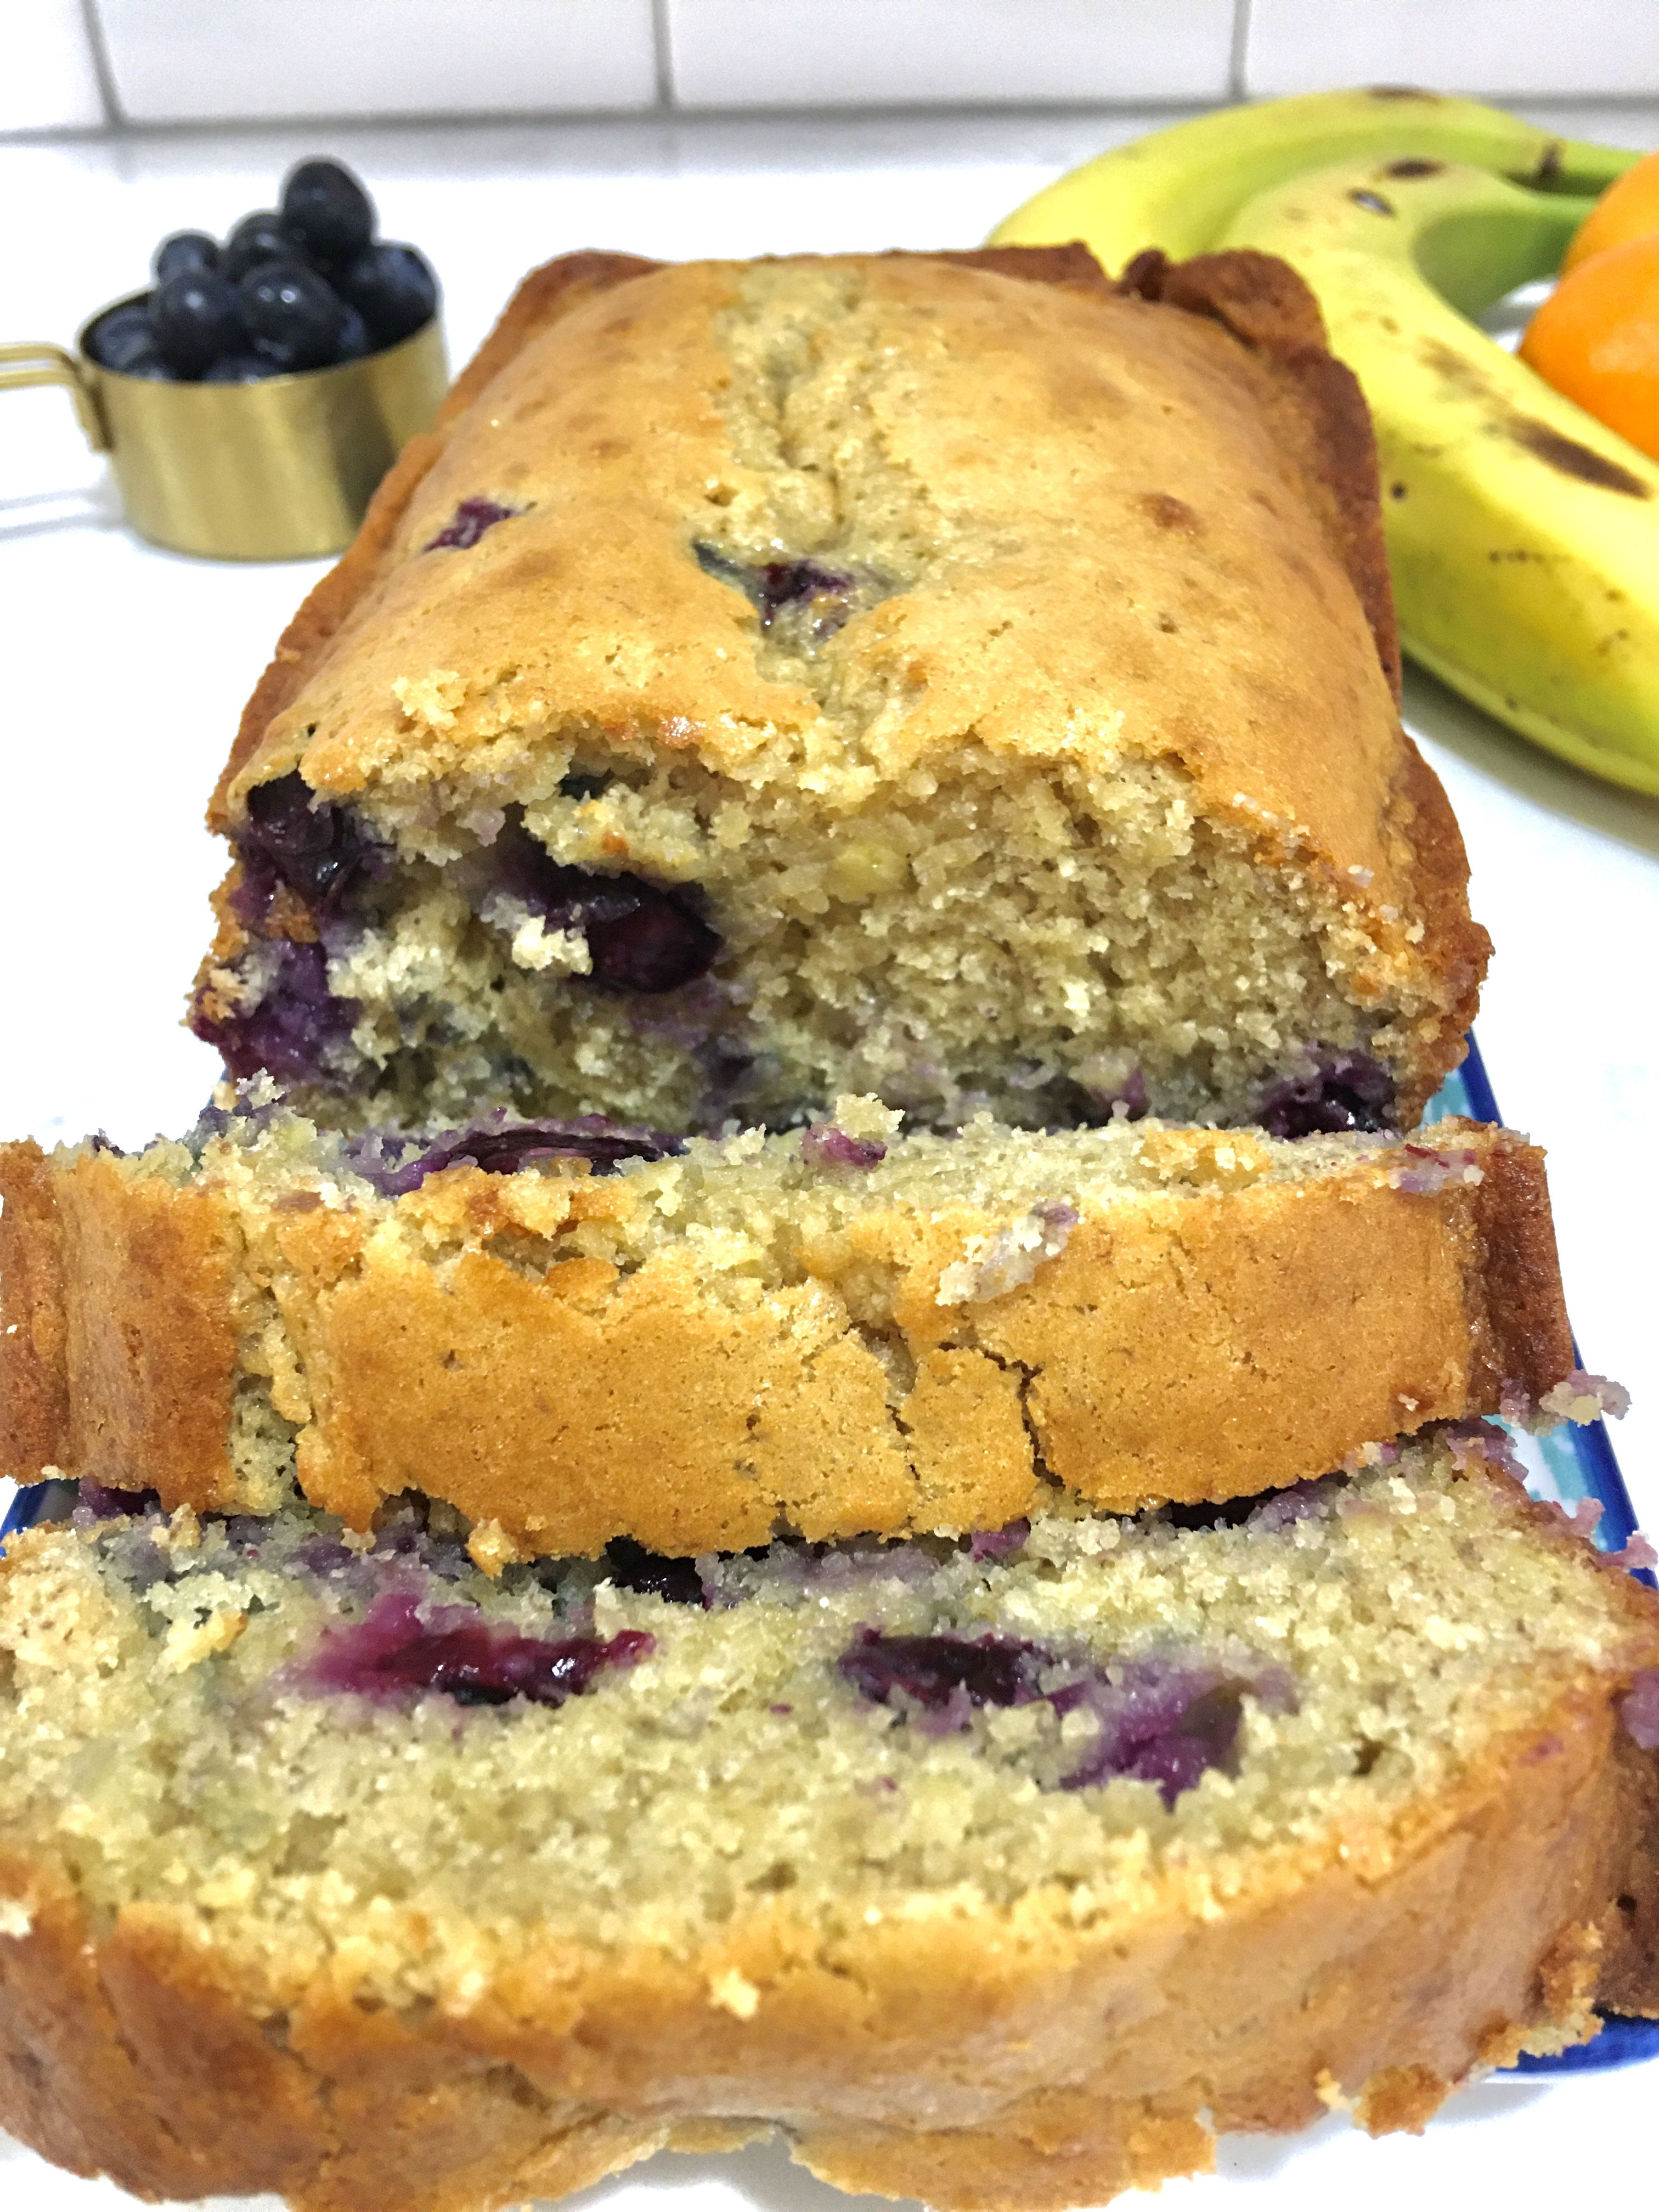 Blueberry Banana Bread Recipe In 2020 Blueberry Banana Bread Sweet Bread Rolls Bread Recipes Homemade